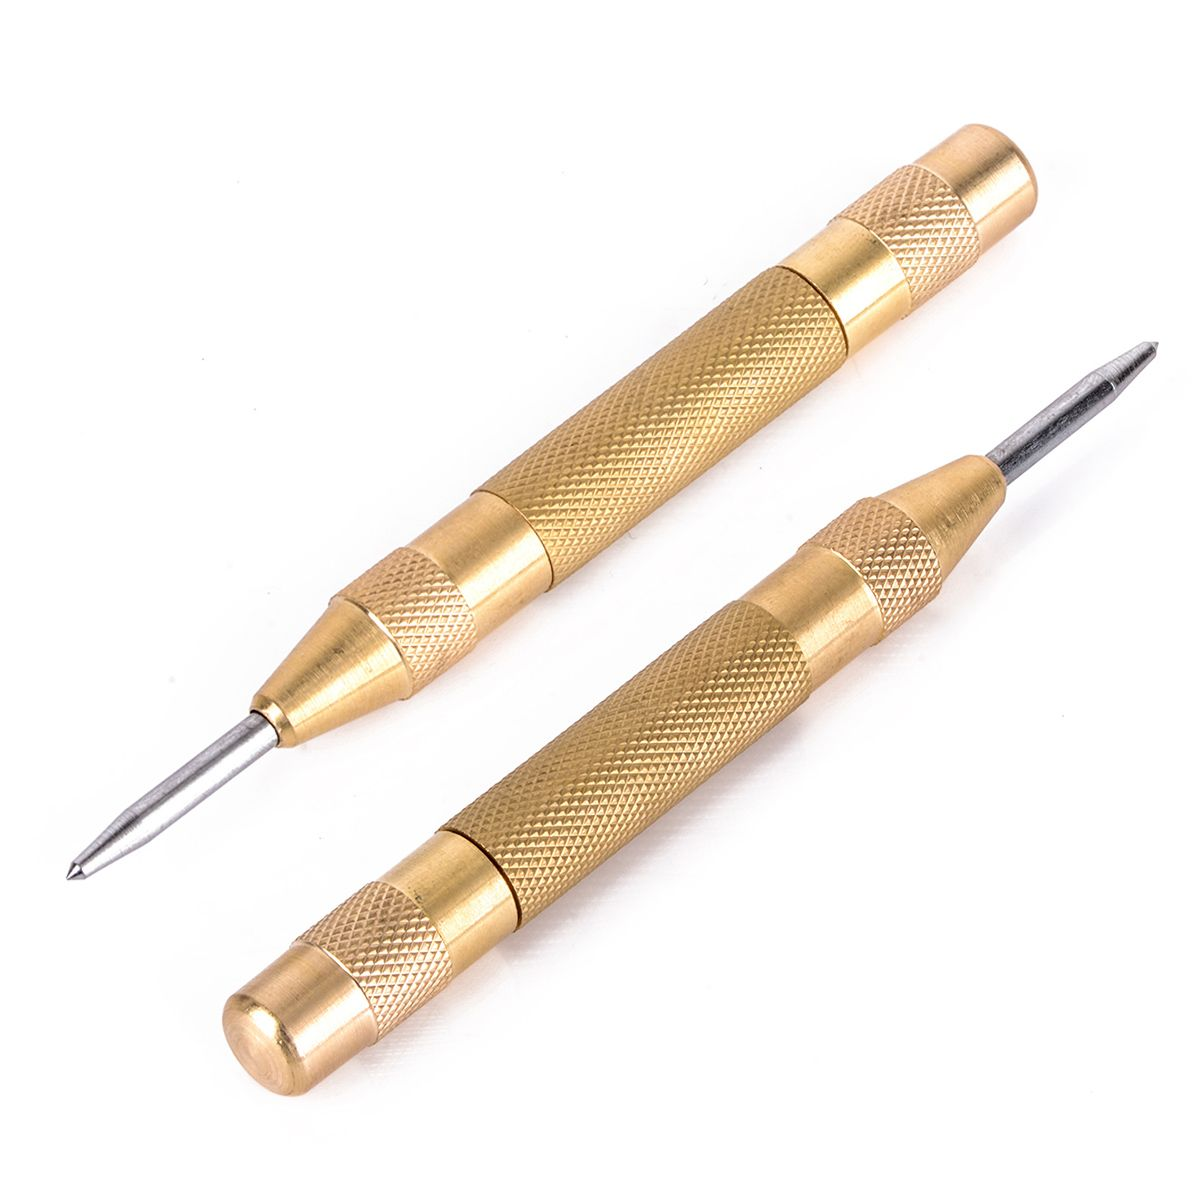 1pc 5 inch Automatic Center Punch Mayitr High Speed Steel Strikes Spring Loaded Marking Starting Holes Tool